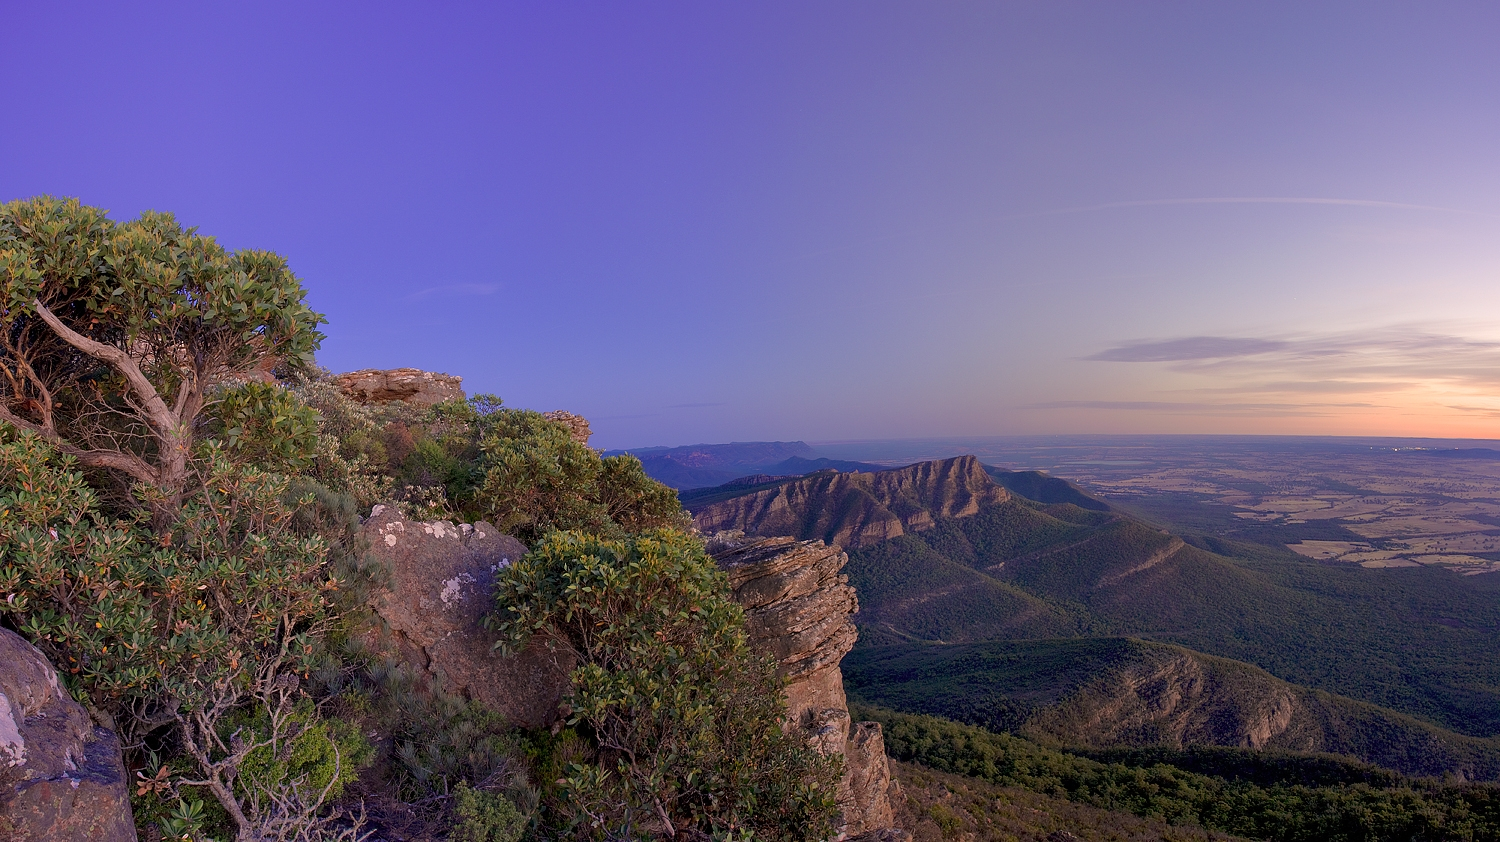 Scenery, Grampians National Park, Mt William, Gariwerd, Rock outcrops, landscape, view, low light, dusk. plants, flora,;